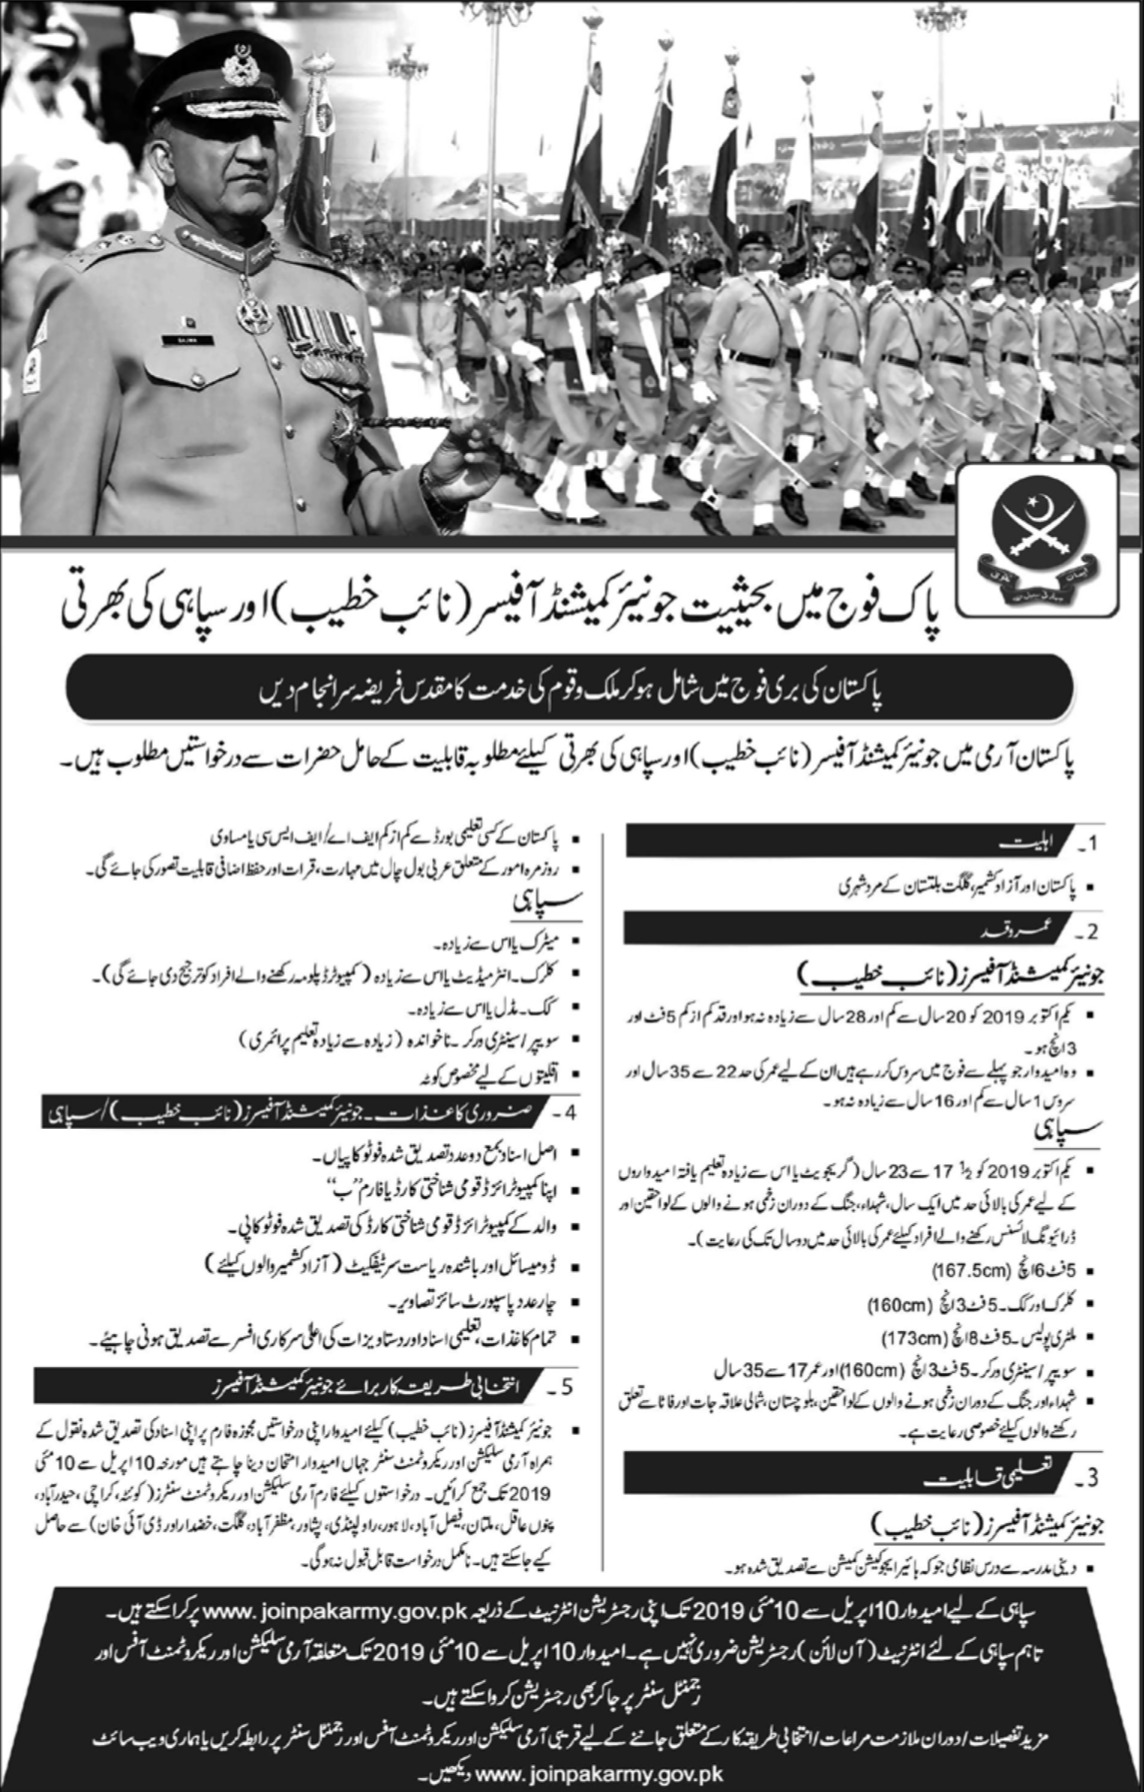 Join Pak Army as Junior Commissioned Officer and Sipahi 2019 LatestJoin Pak Army as Junior Commissioned Officer and Sipahi 2019 Latest